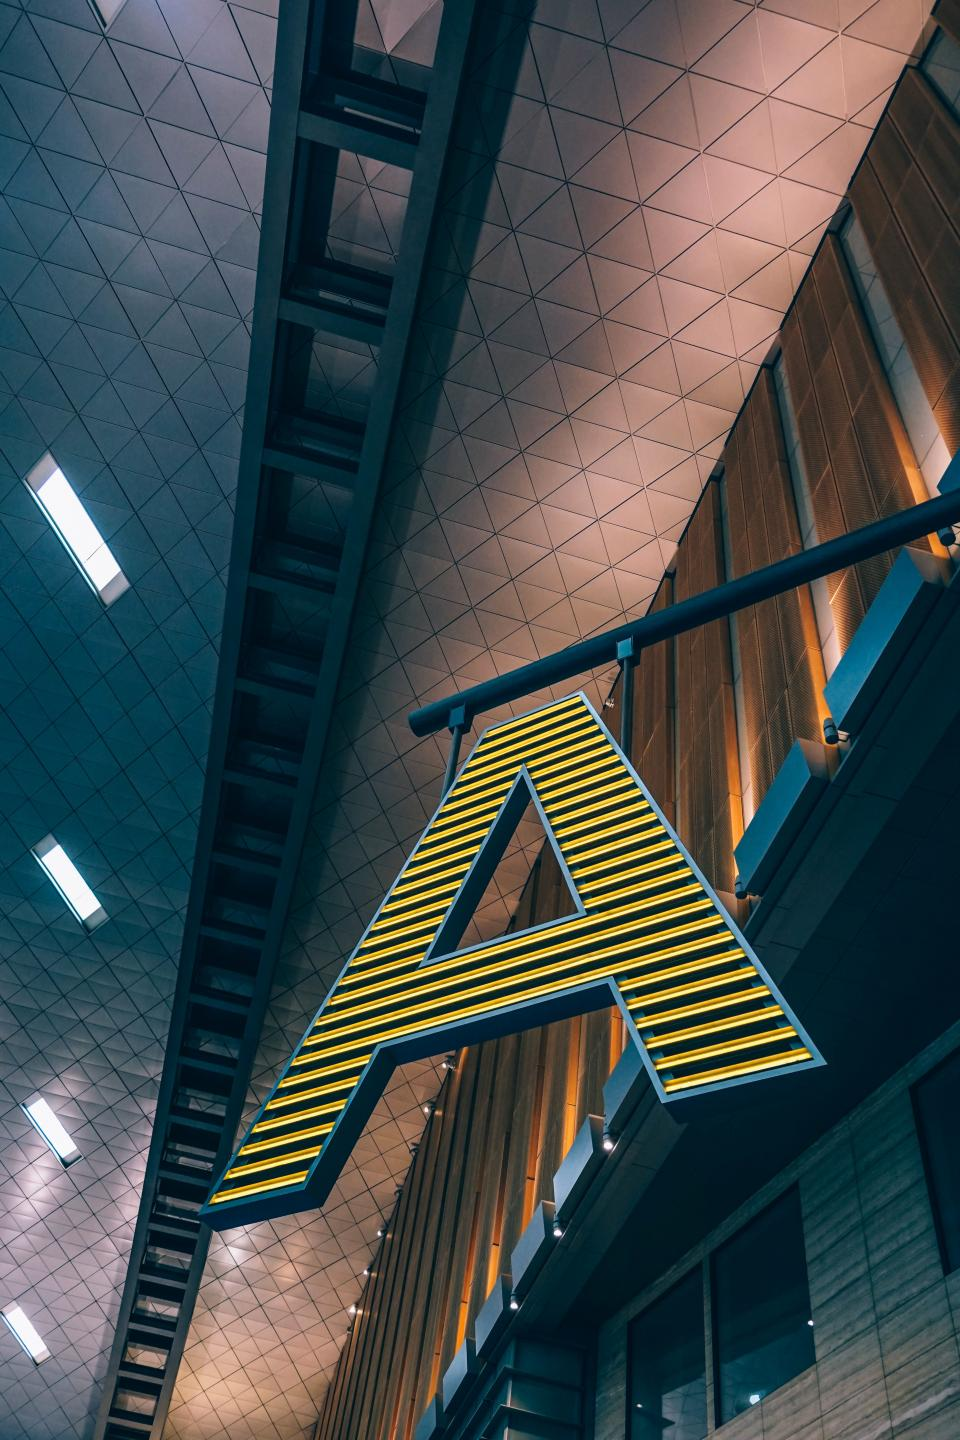 architecture airport building ceiling letter font design lights